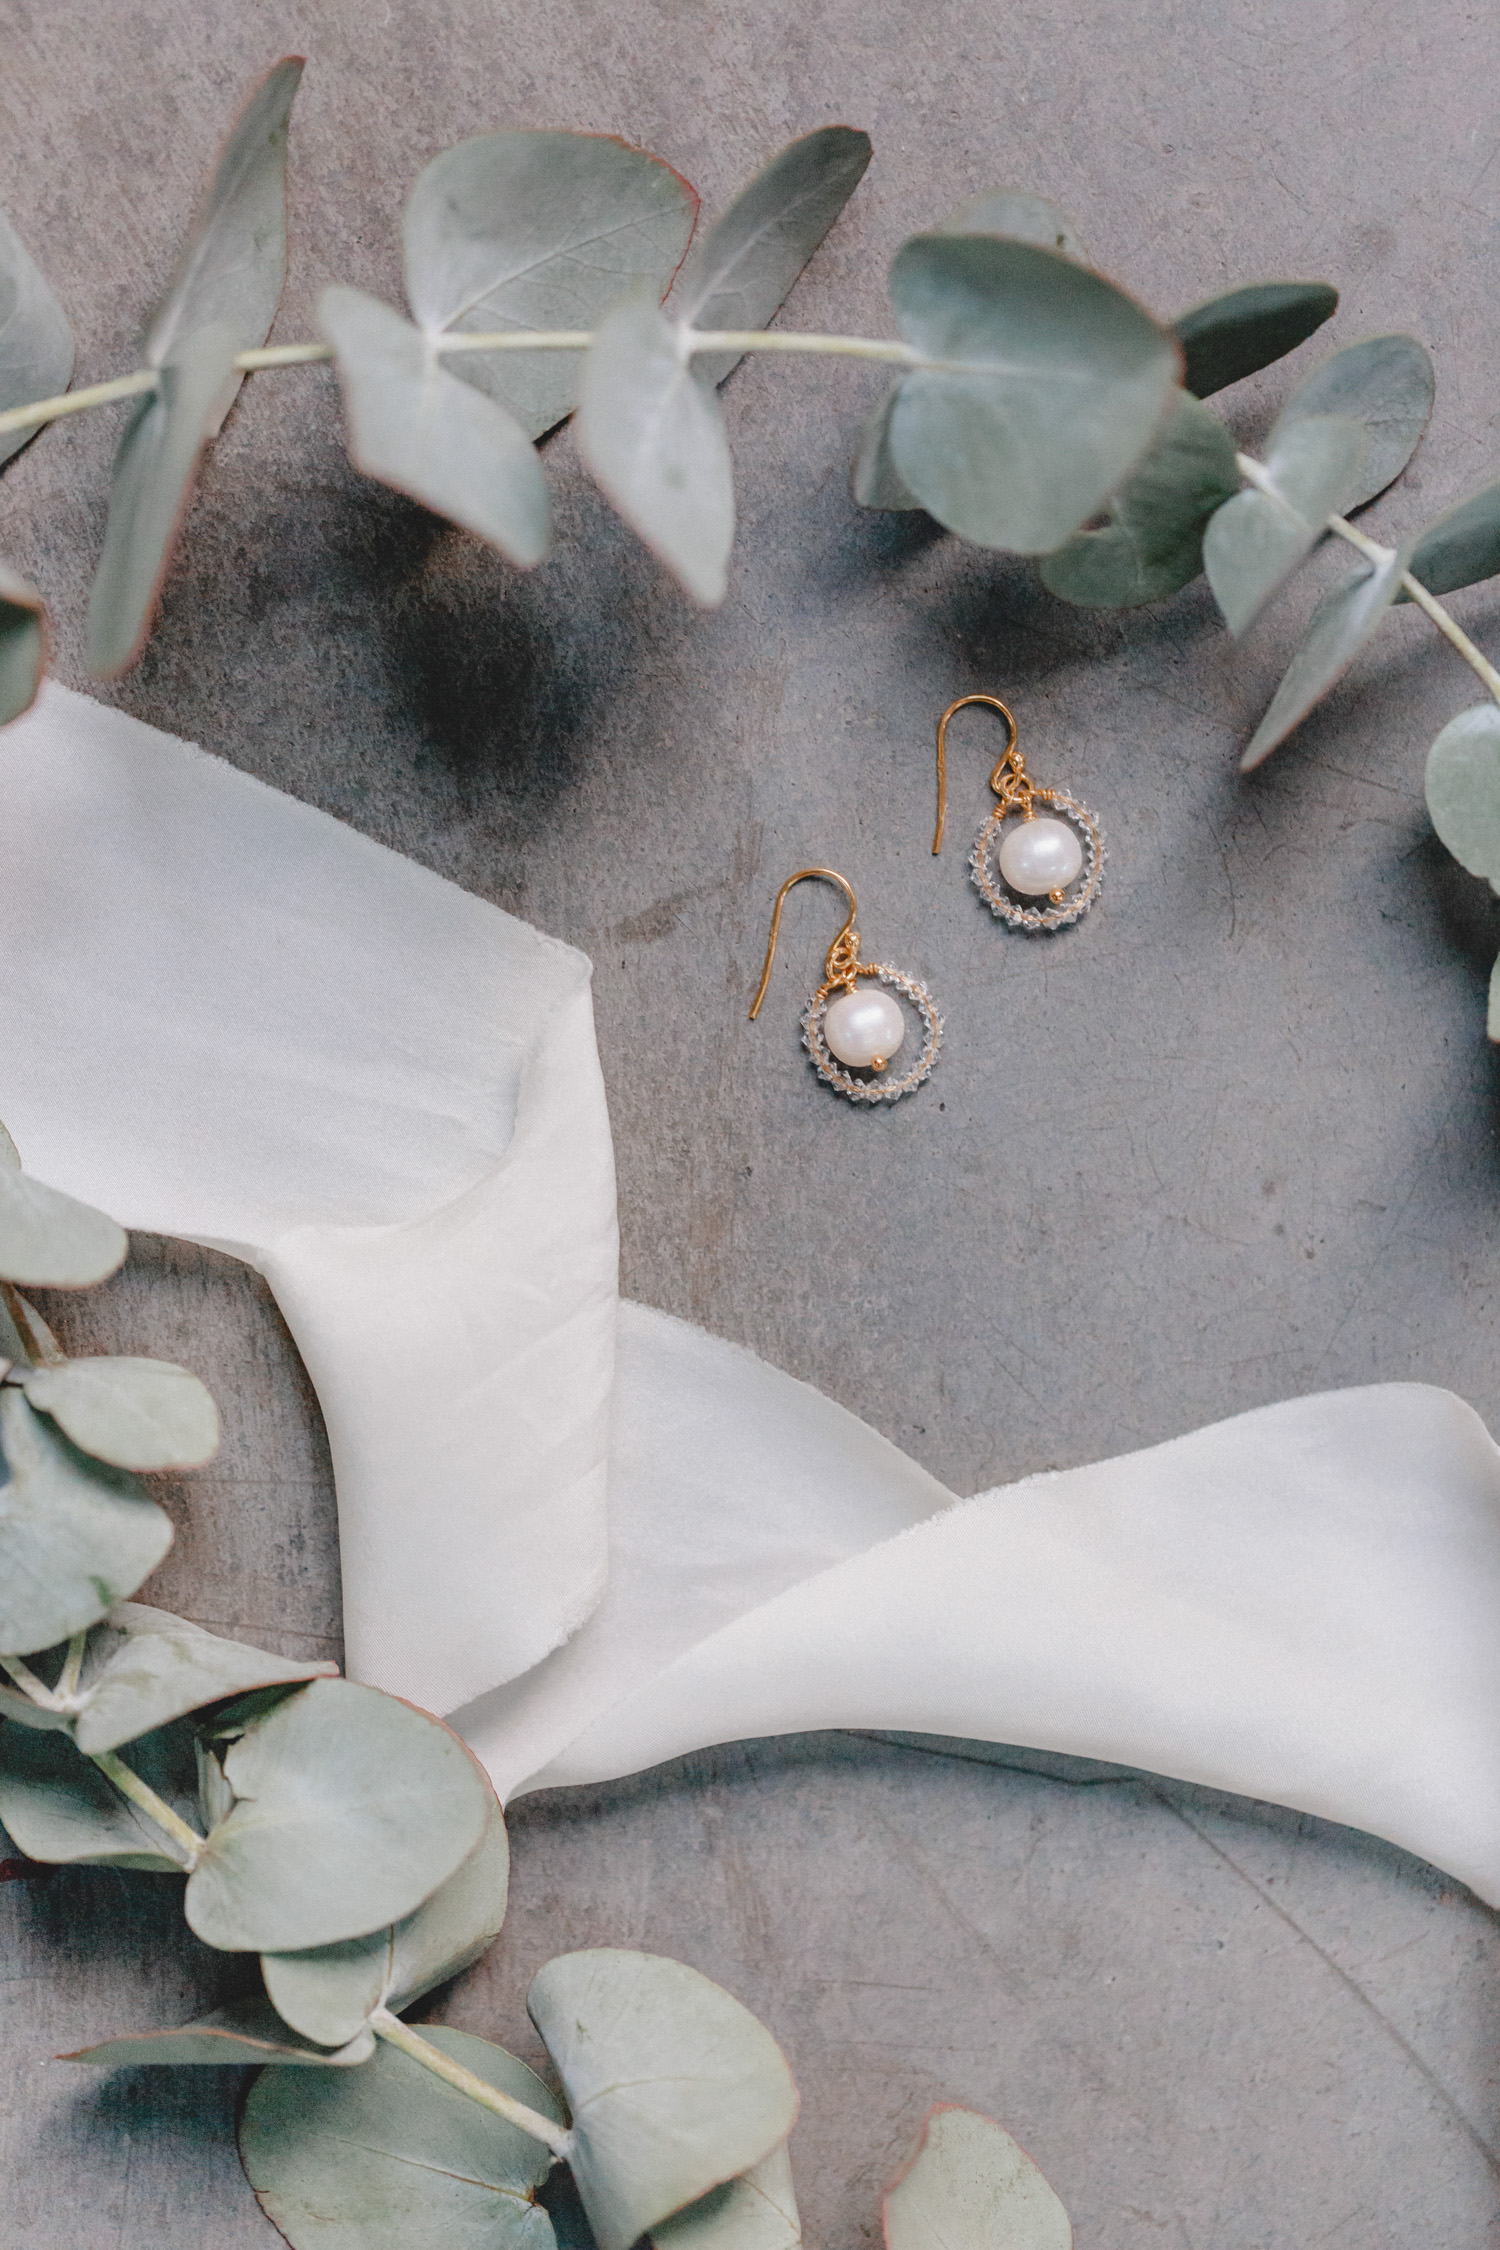 A circle of sparkling Swarovski crystals encloses a shimmering round freshwater pearl as a noble centrepiece - through their love of detail, these earrings are a very special eye-catcher, without being too large and opulent.